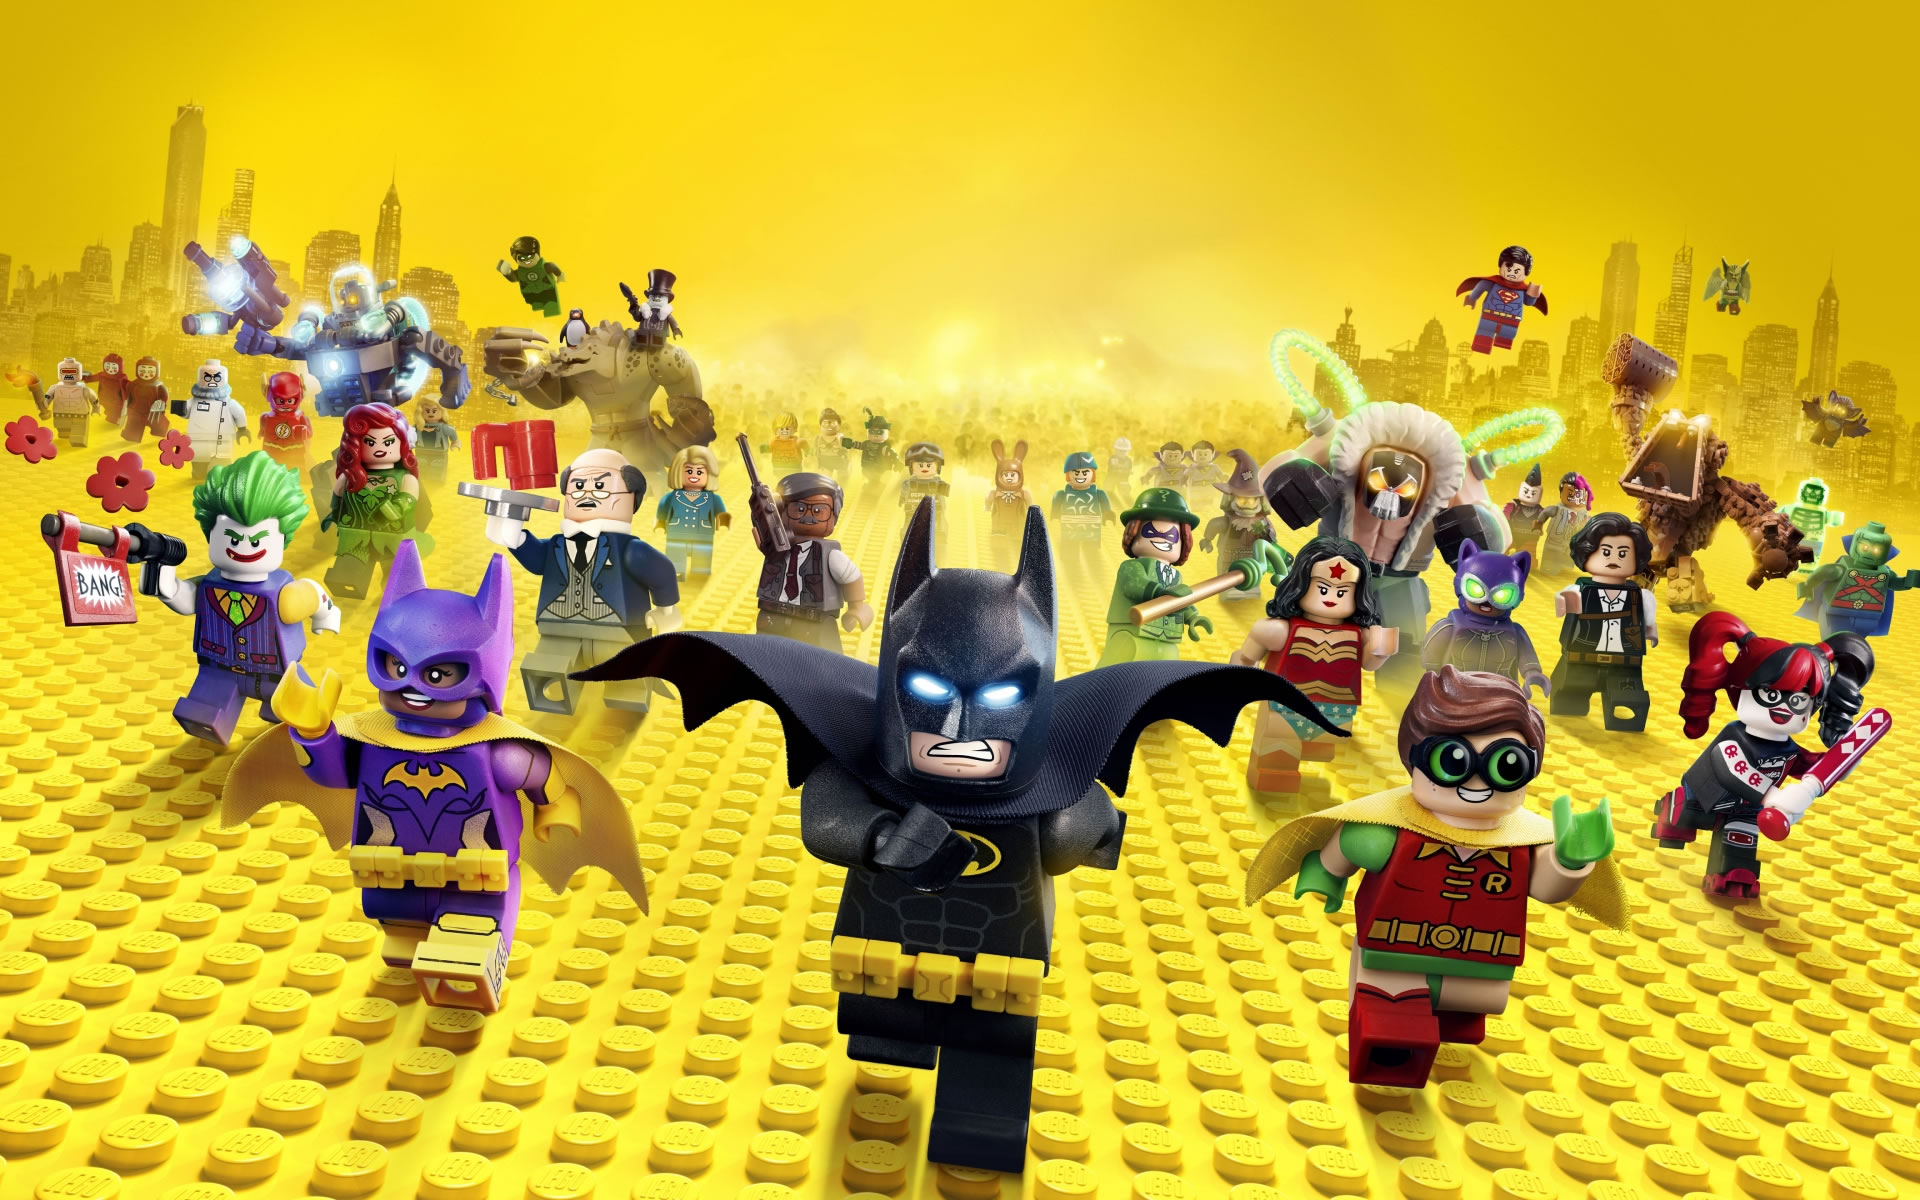 download wallpaper: LEGO Batman wallpaper